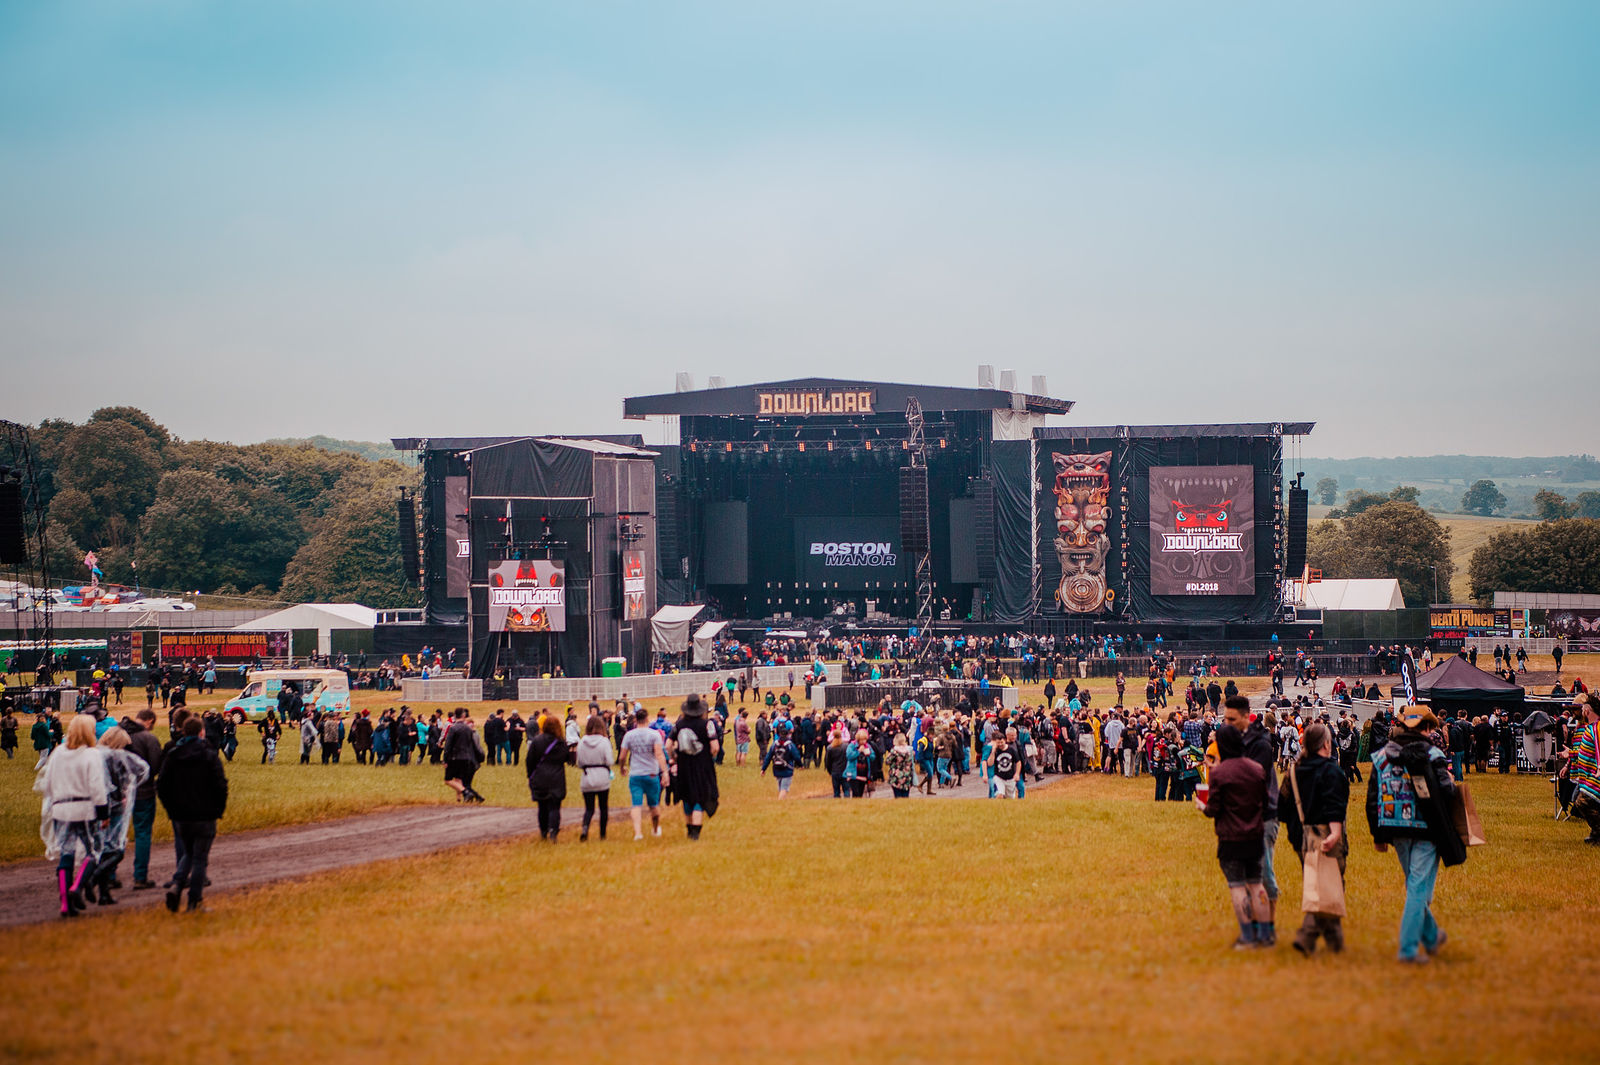 Download Festival 2018